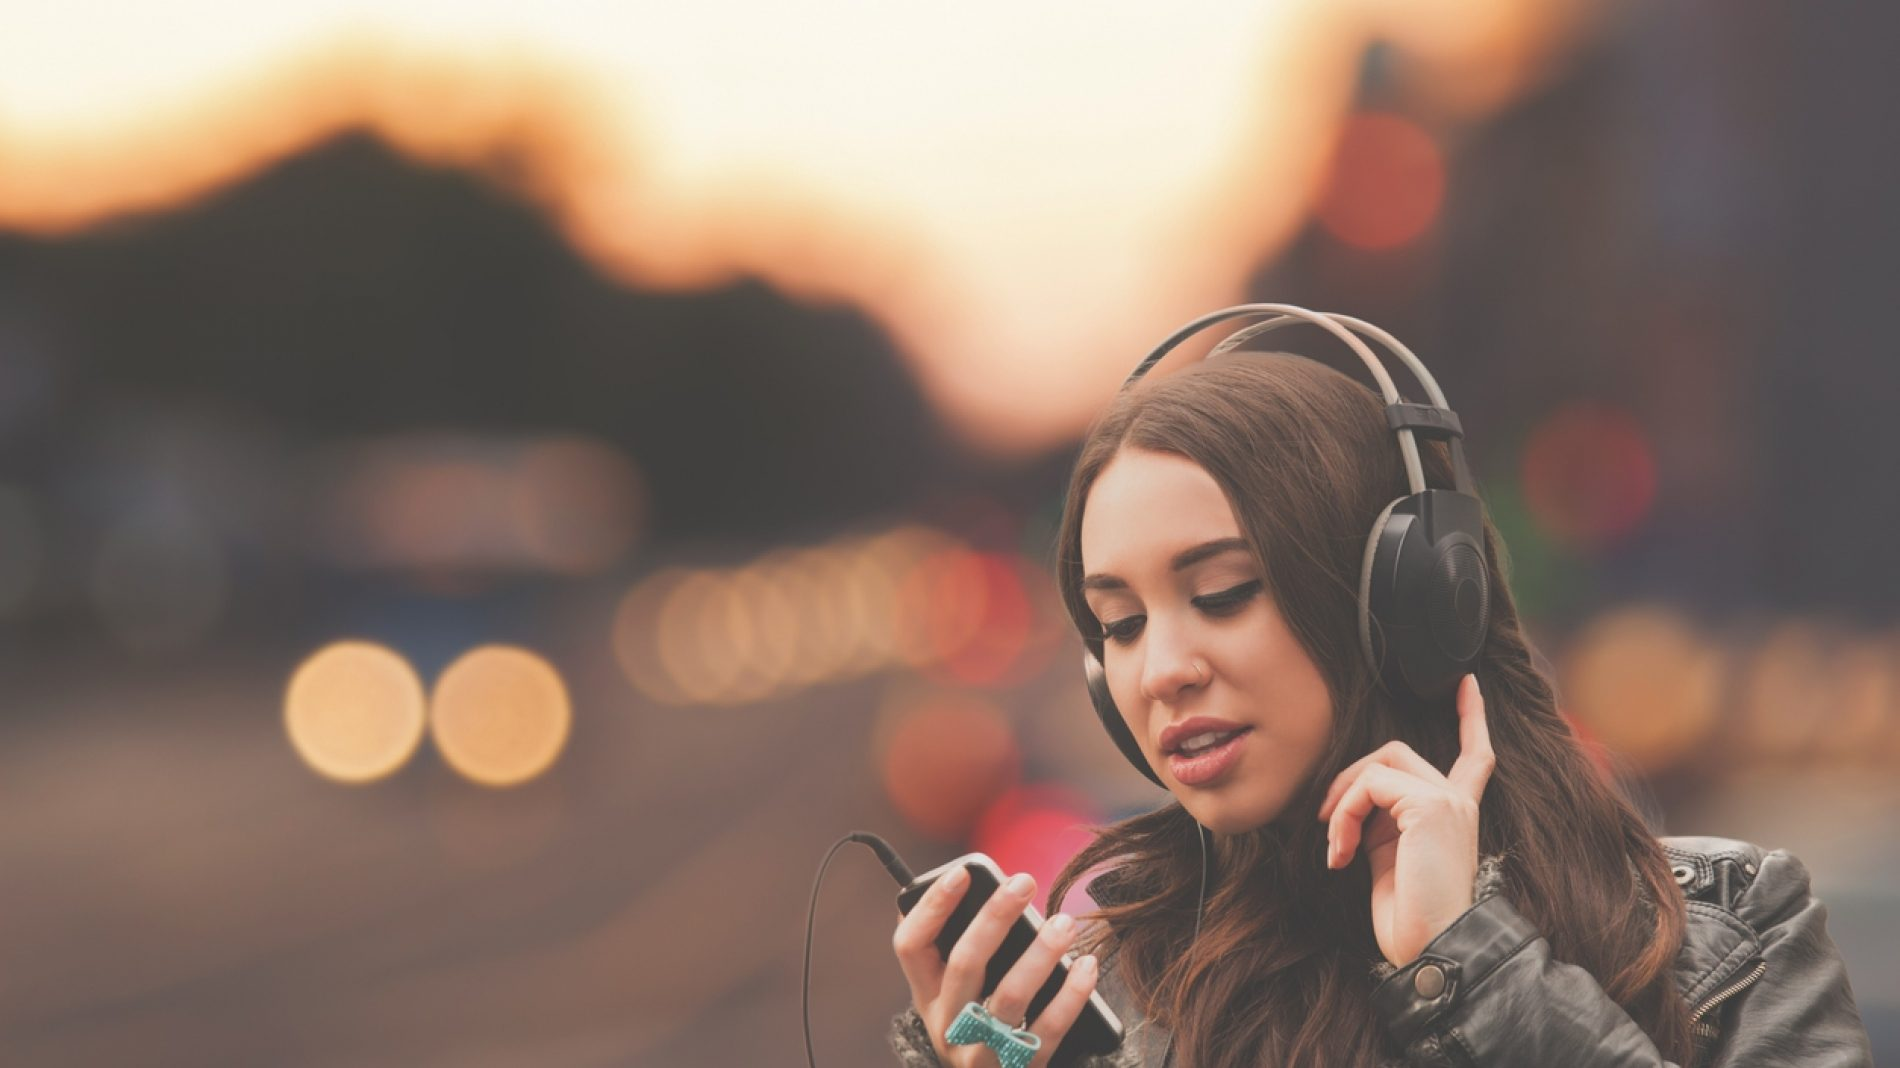 young_woman_music